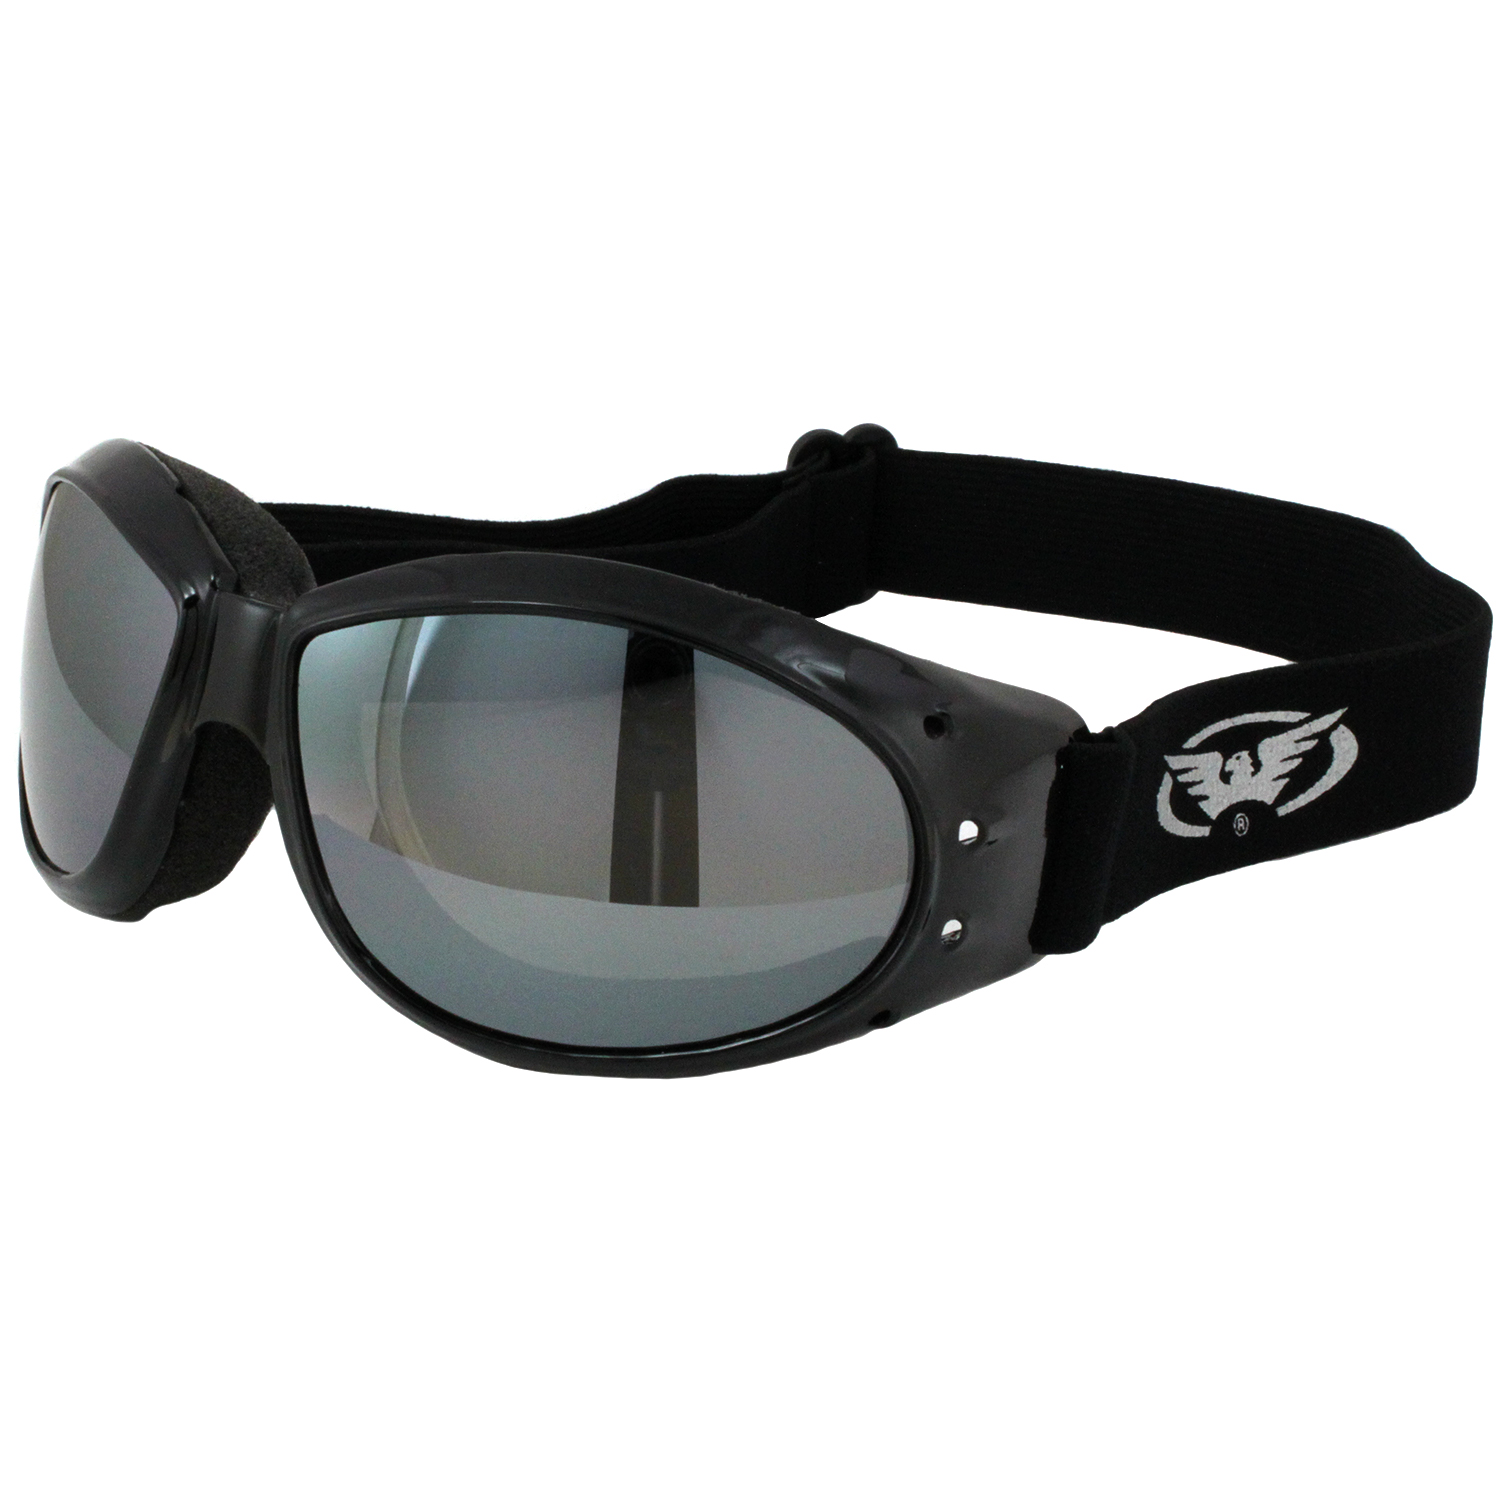 Global Vision Eliminator Motorcycle Goggles Black Frames Flash Mirror Lens Walmart Com Walmart Com